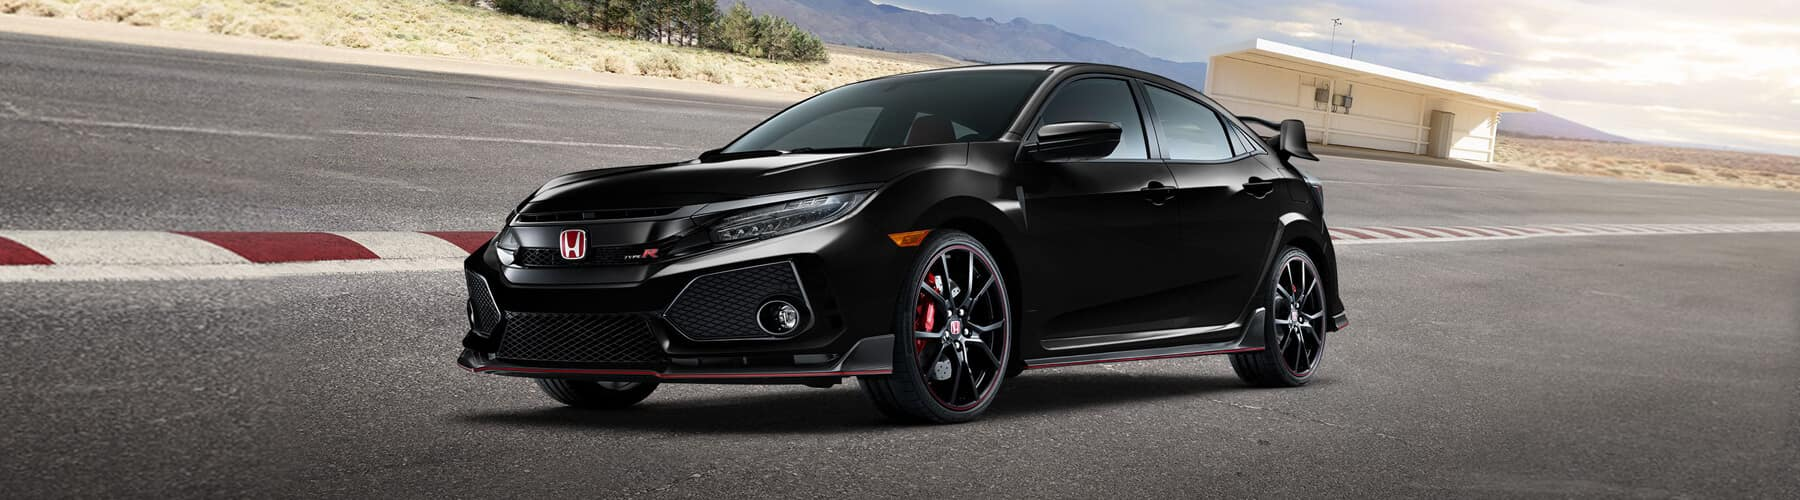 2018 Honda Civic Type R Banner